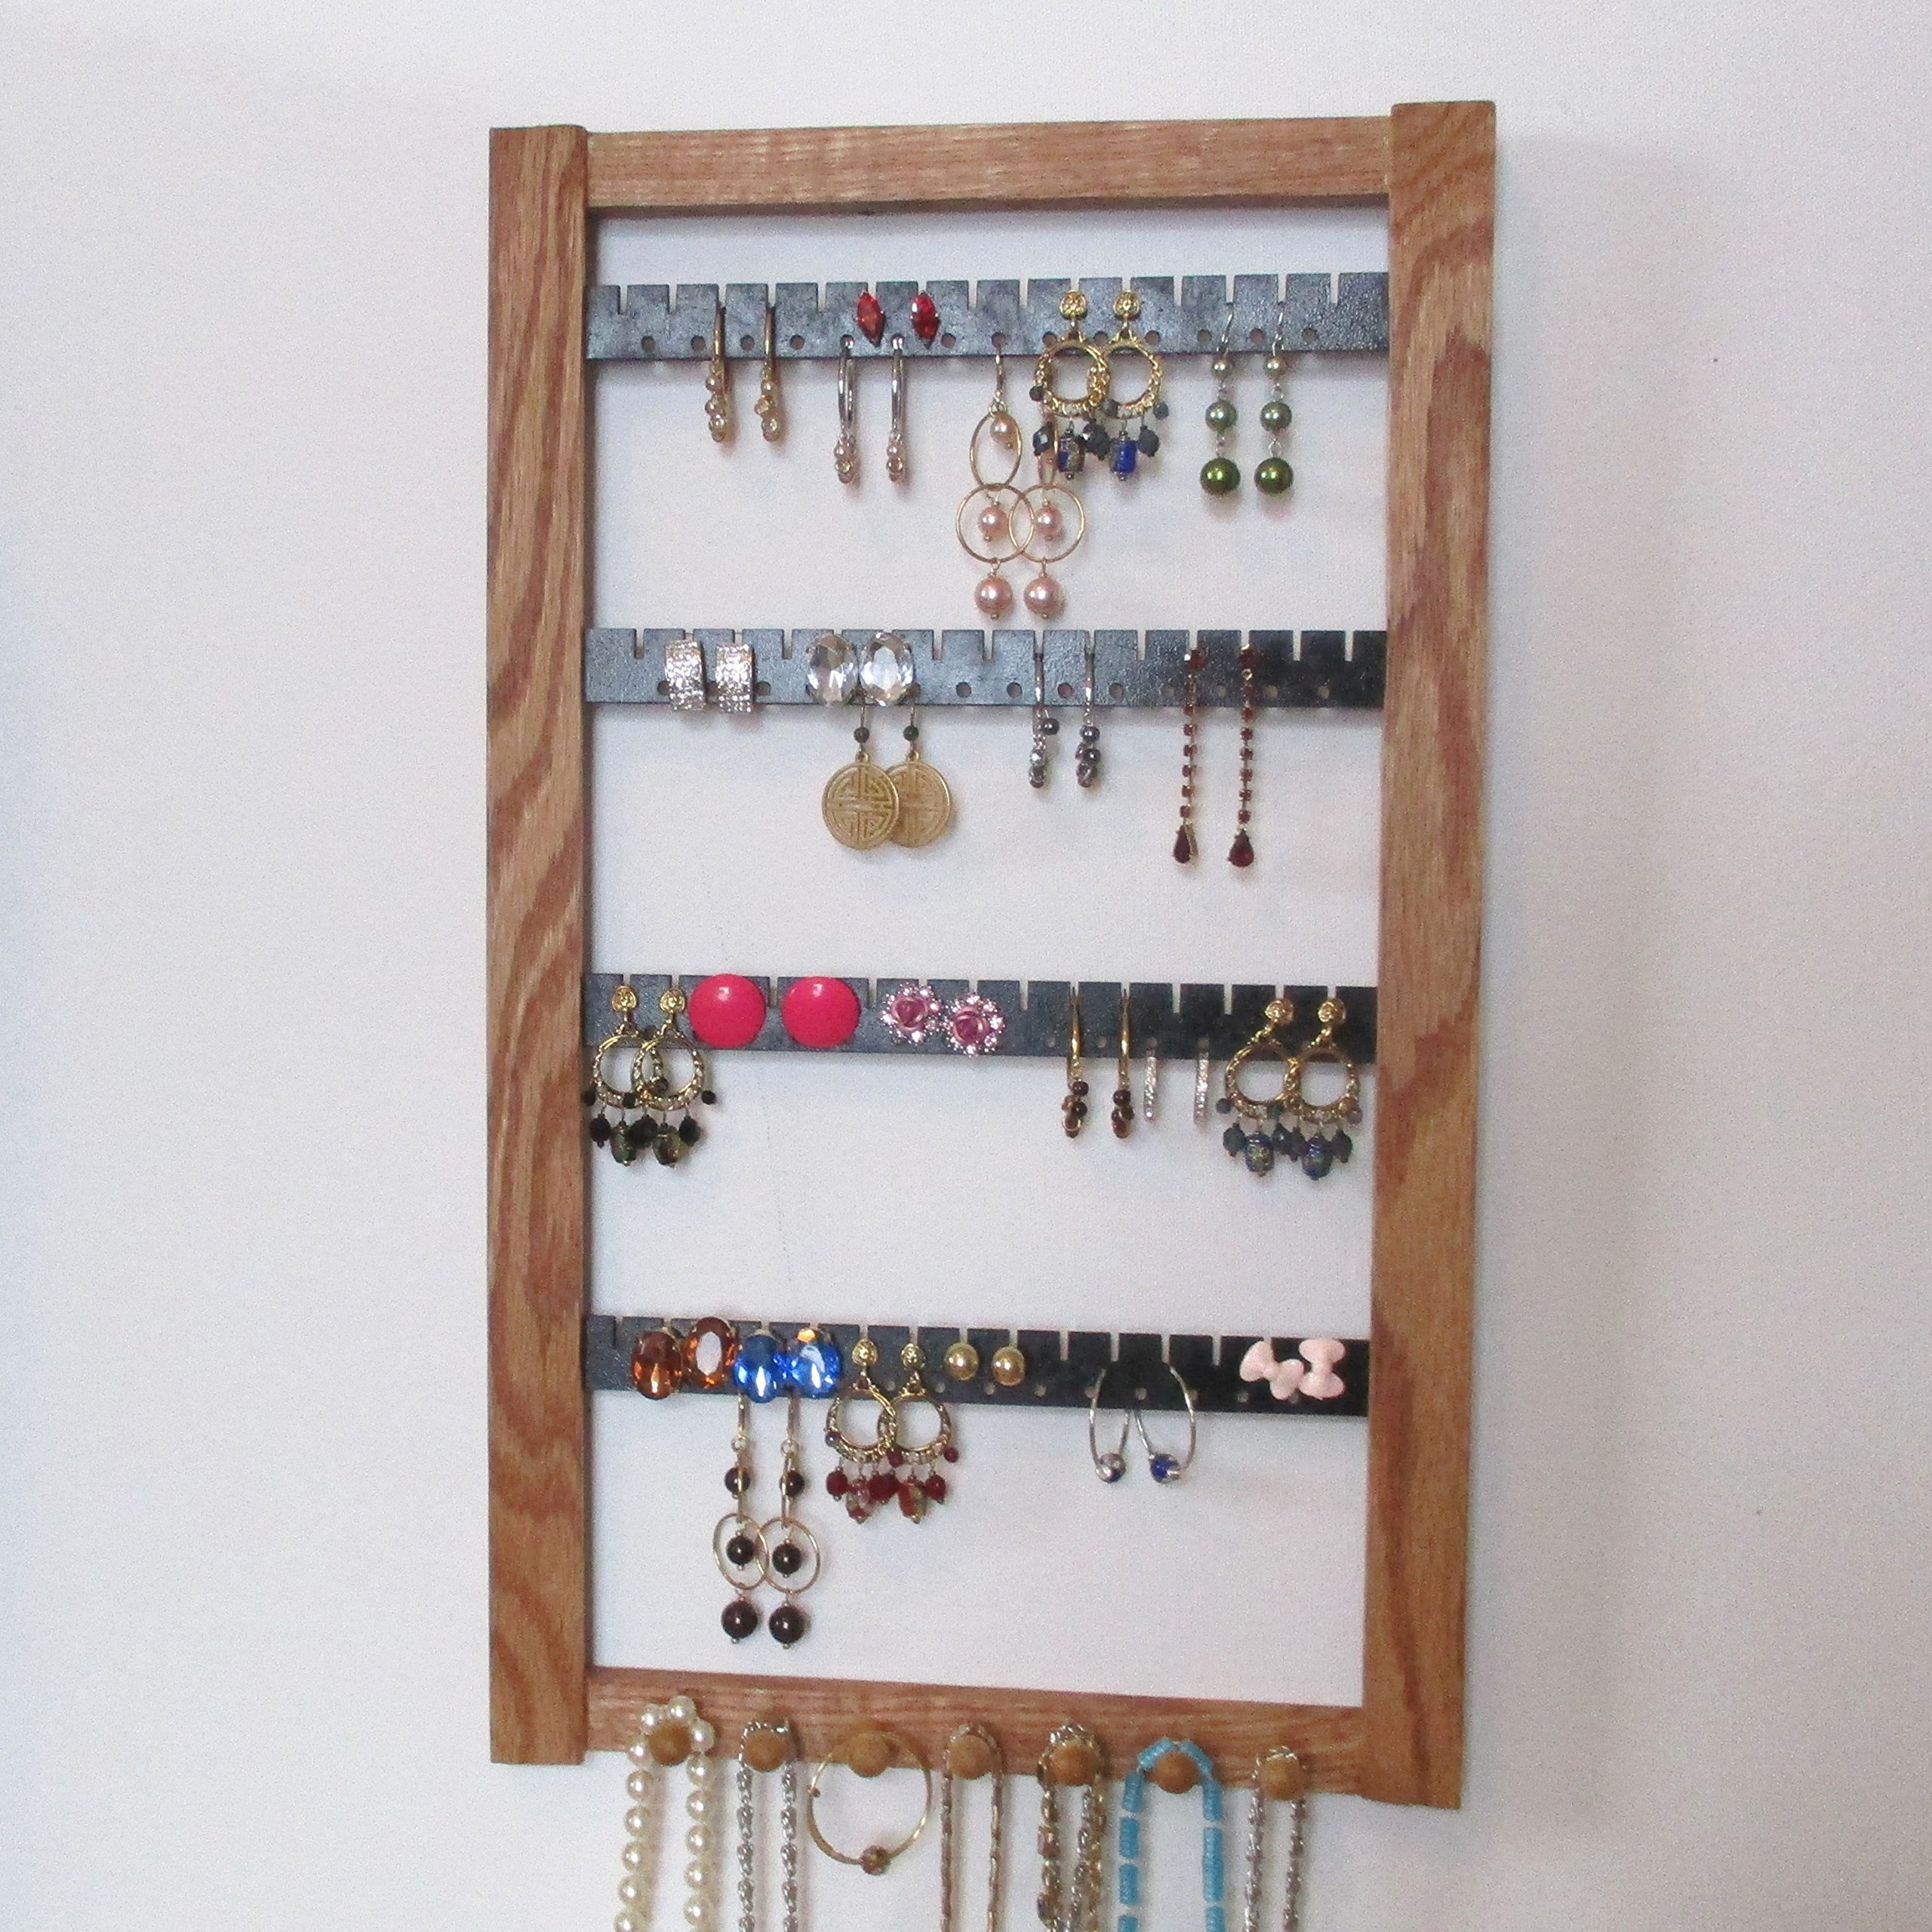 Jewelry Storage, Earring Holder, Necklace Holder, Jewelry Organizer, Earring Storage, Jewelry Display, Oak Jewelry Storage, Oak Display